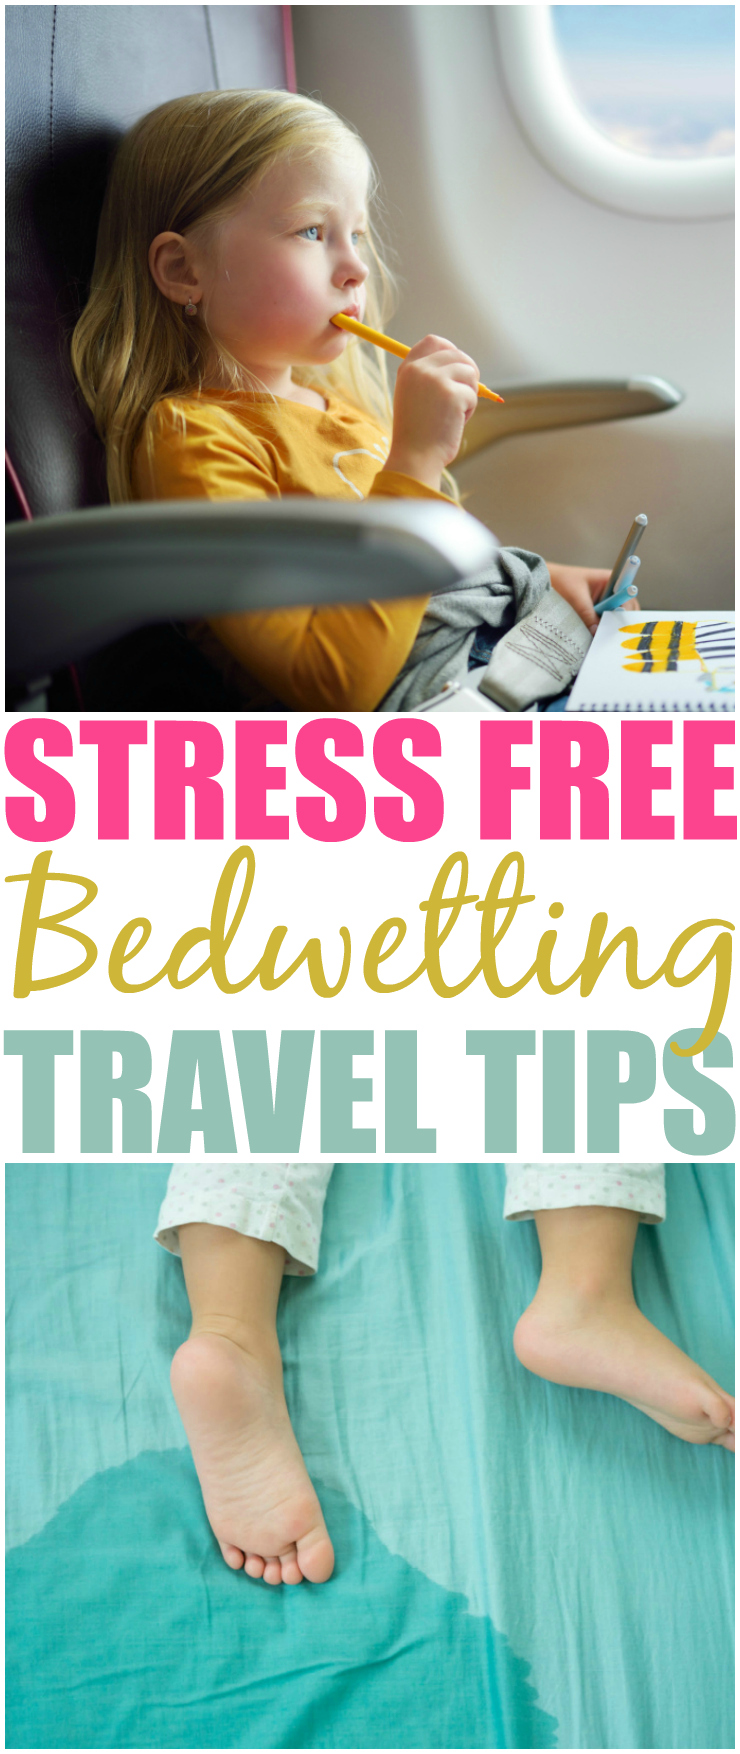 Have A Stress Free Vacation, Bedwetting Travel Tips